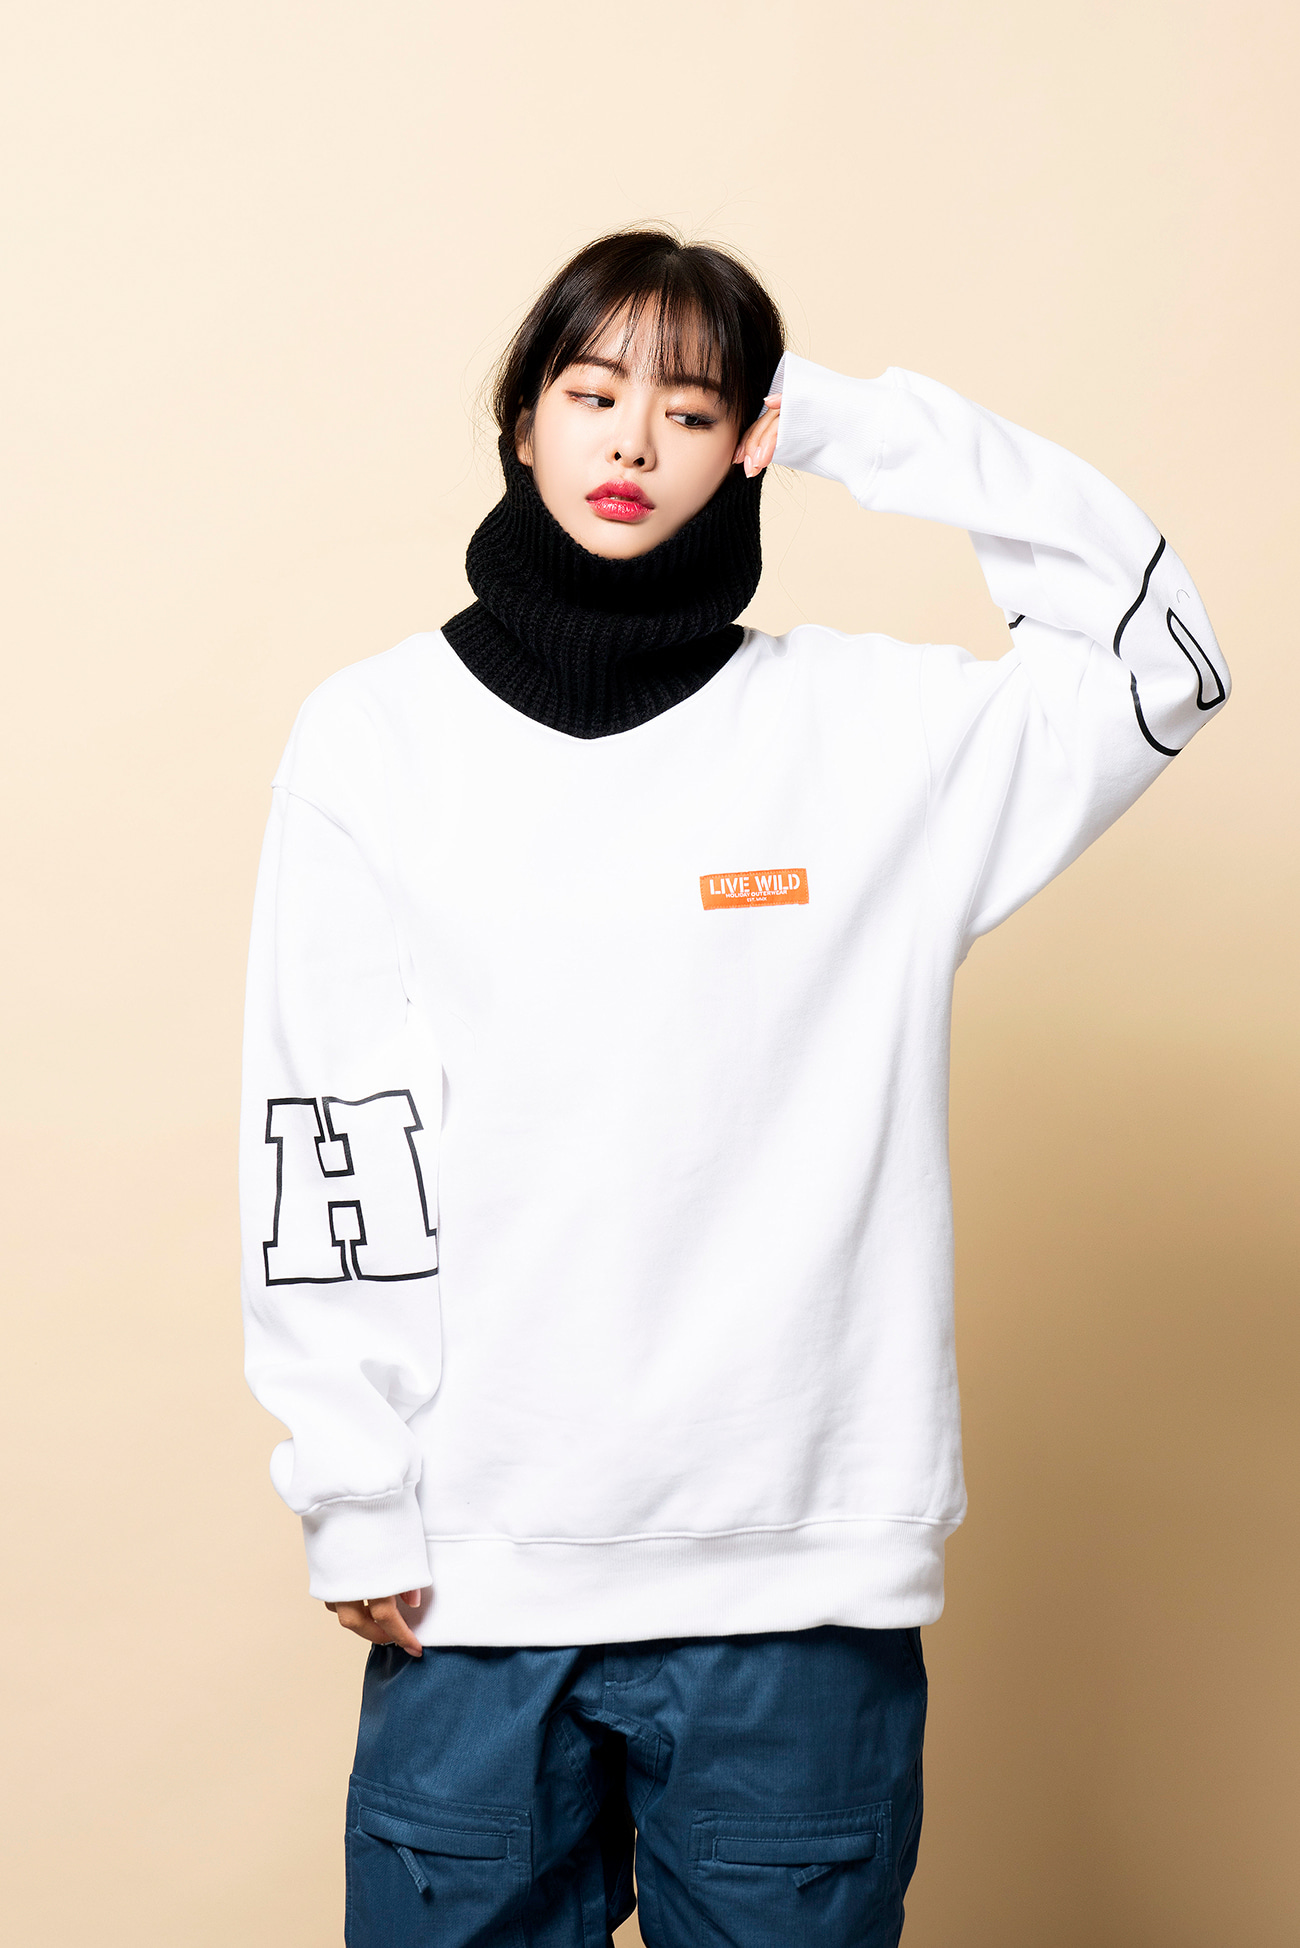 KNIT TURTLE neck - whiteHOLIDAY OUTERWEAR